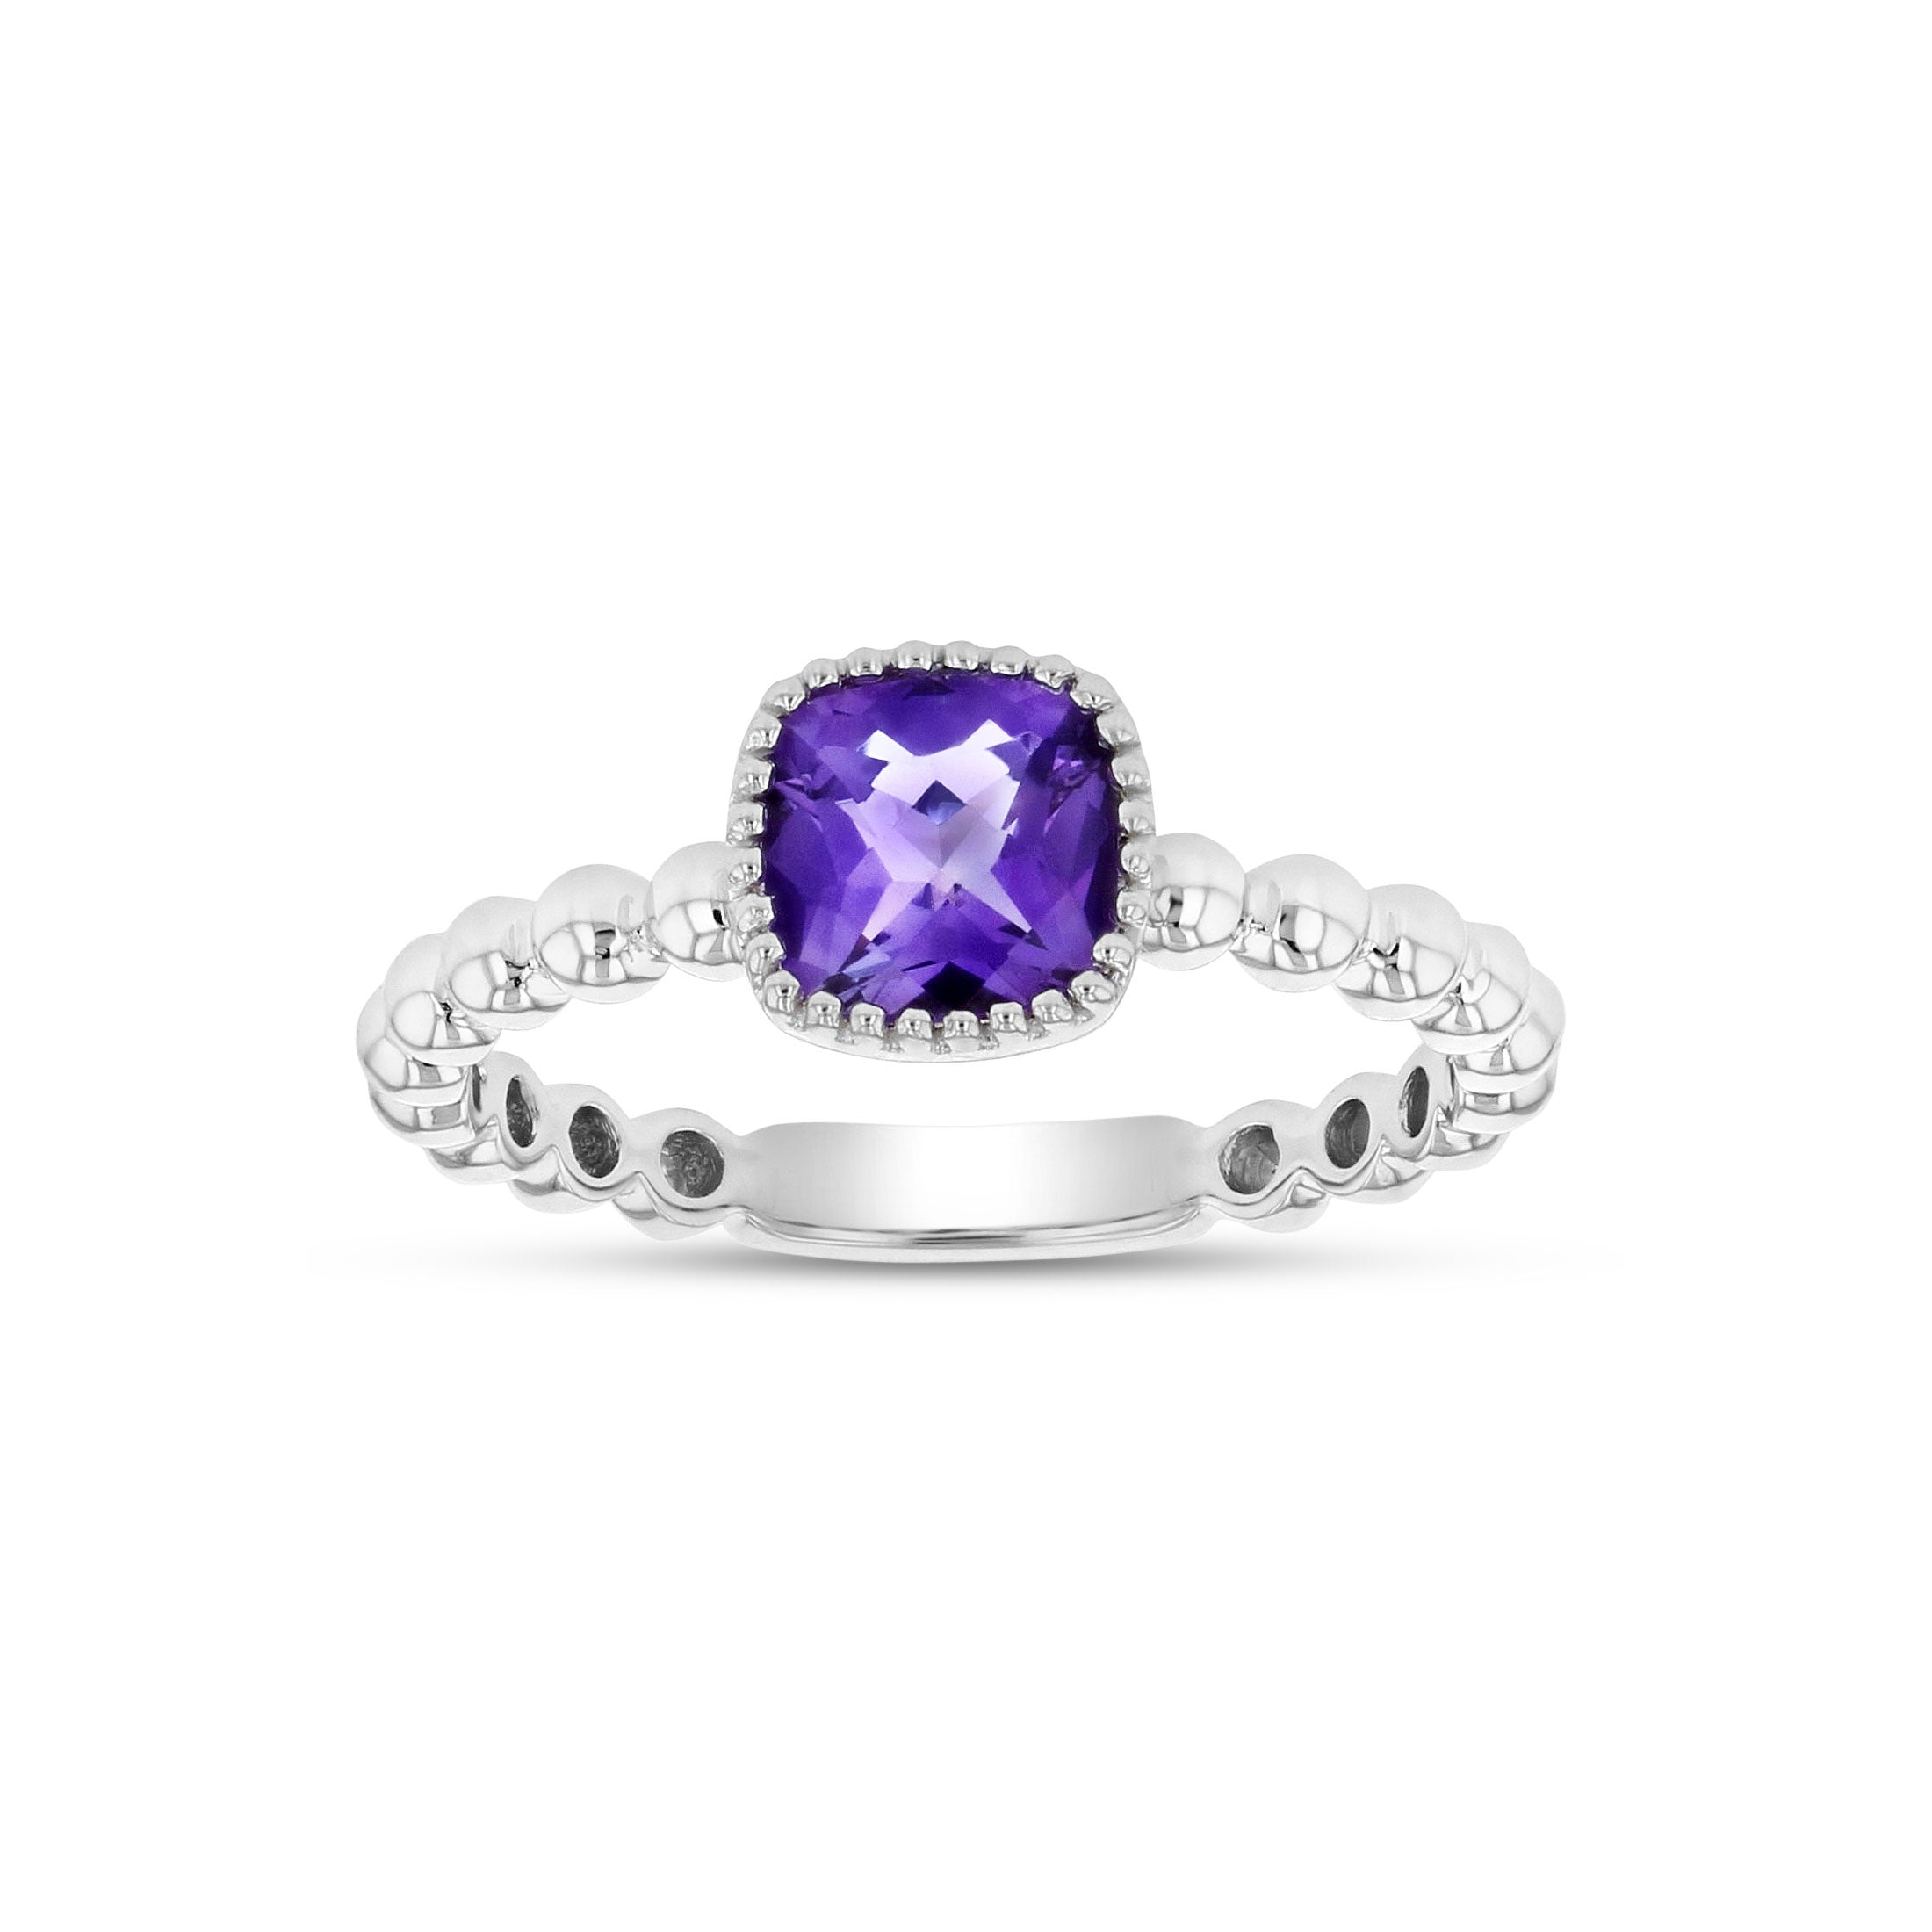 Bead Design Cushion Shape Amethyst Ring, 14K White Gold